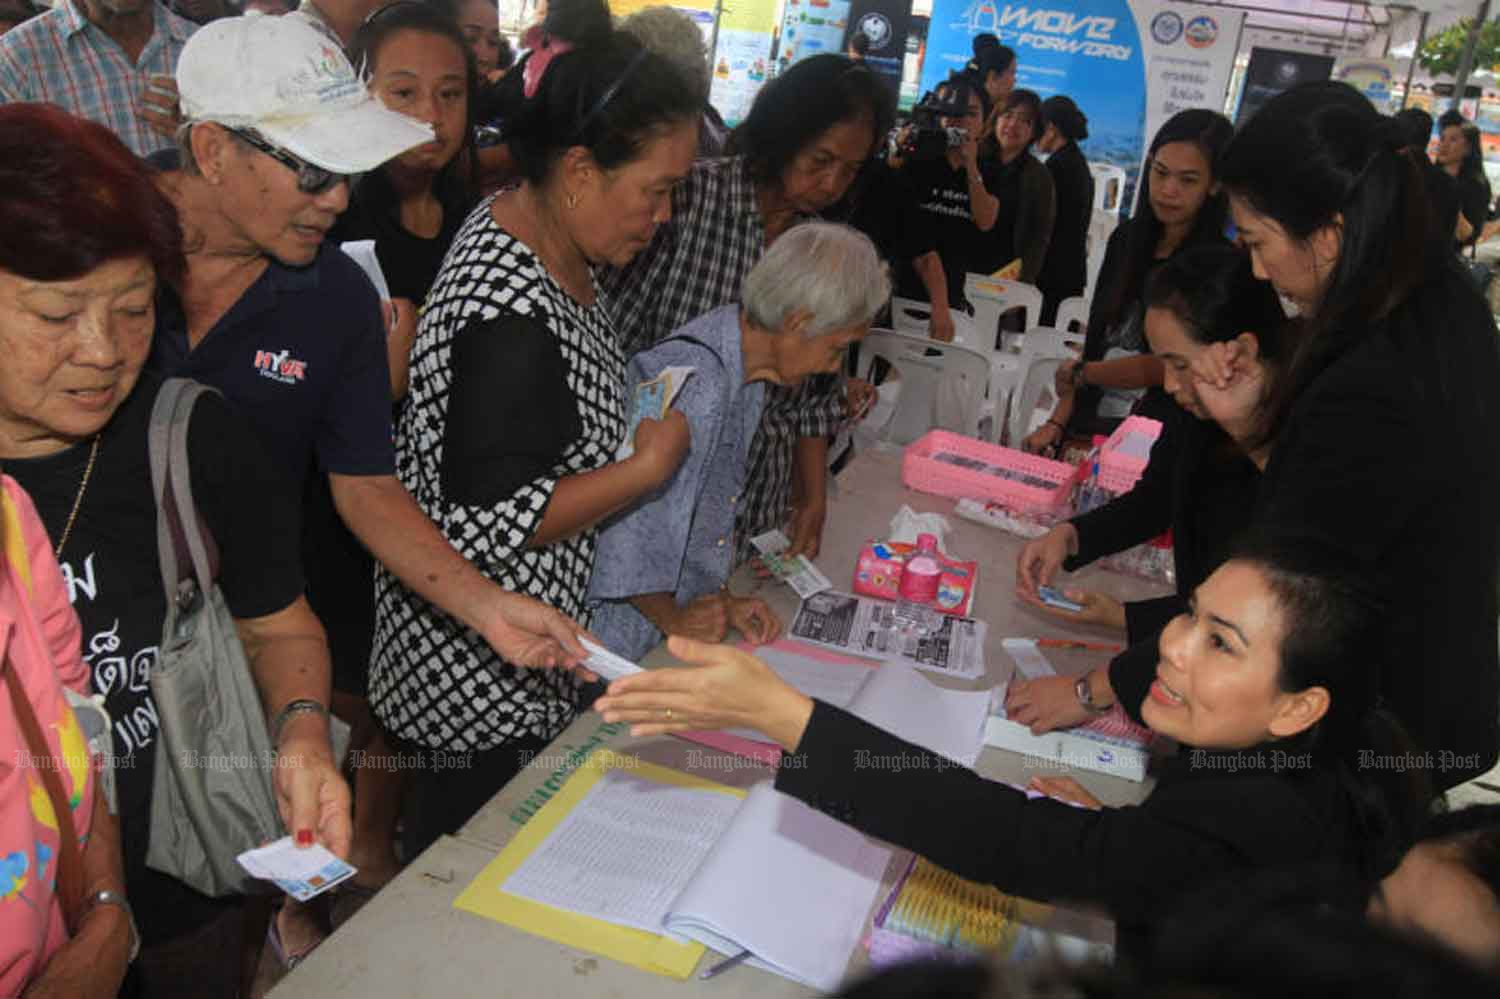 Officials hand out government welfare cards to registered poor people at the provincial hall of Samut Prakan in 2017. (Photo: Somchai Poomlard)